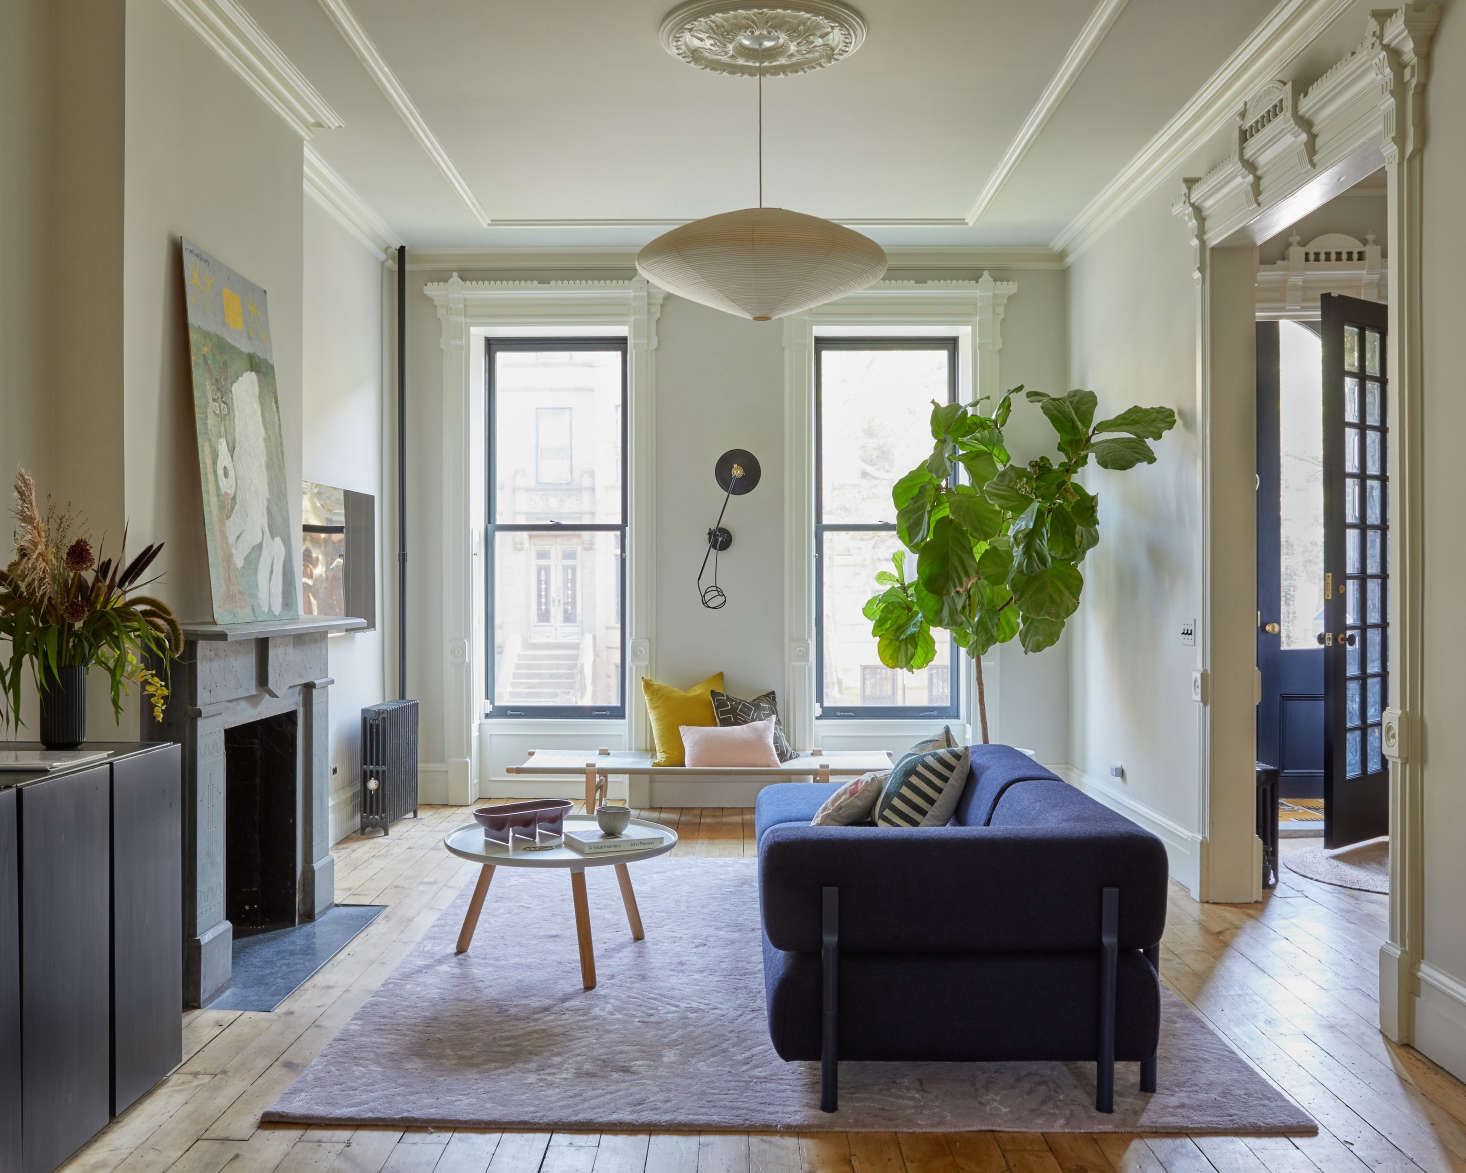 Another floor finished in water-based Bona Naturale; seeThe Sentimental Minimalist: A Young Architect's Bed-Stuy Townhouse Makeover for the full project.